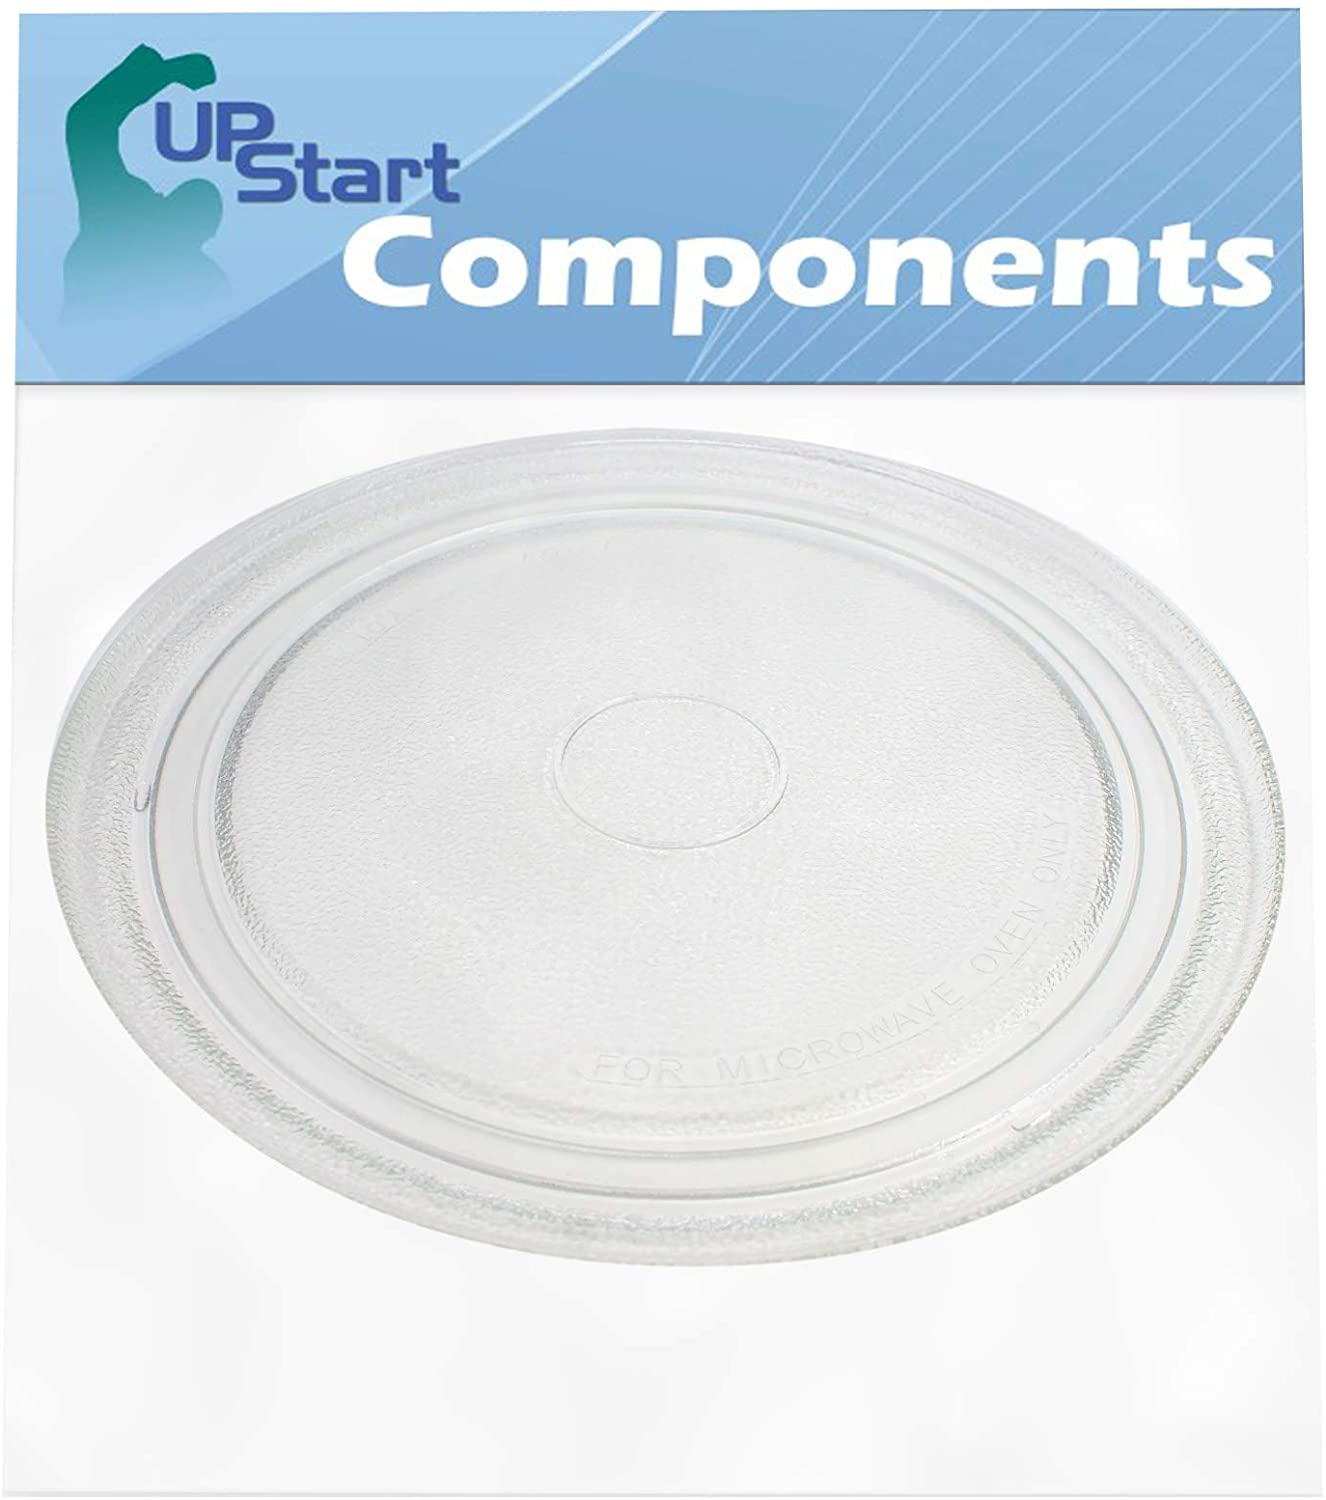 NTNT-A034WRE Microwave Glass Turntable Plate Replacement for Sharp R4180YA - Compatible with A034 10 3/4 Inch Glass Tray